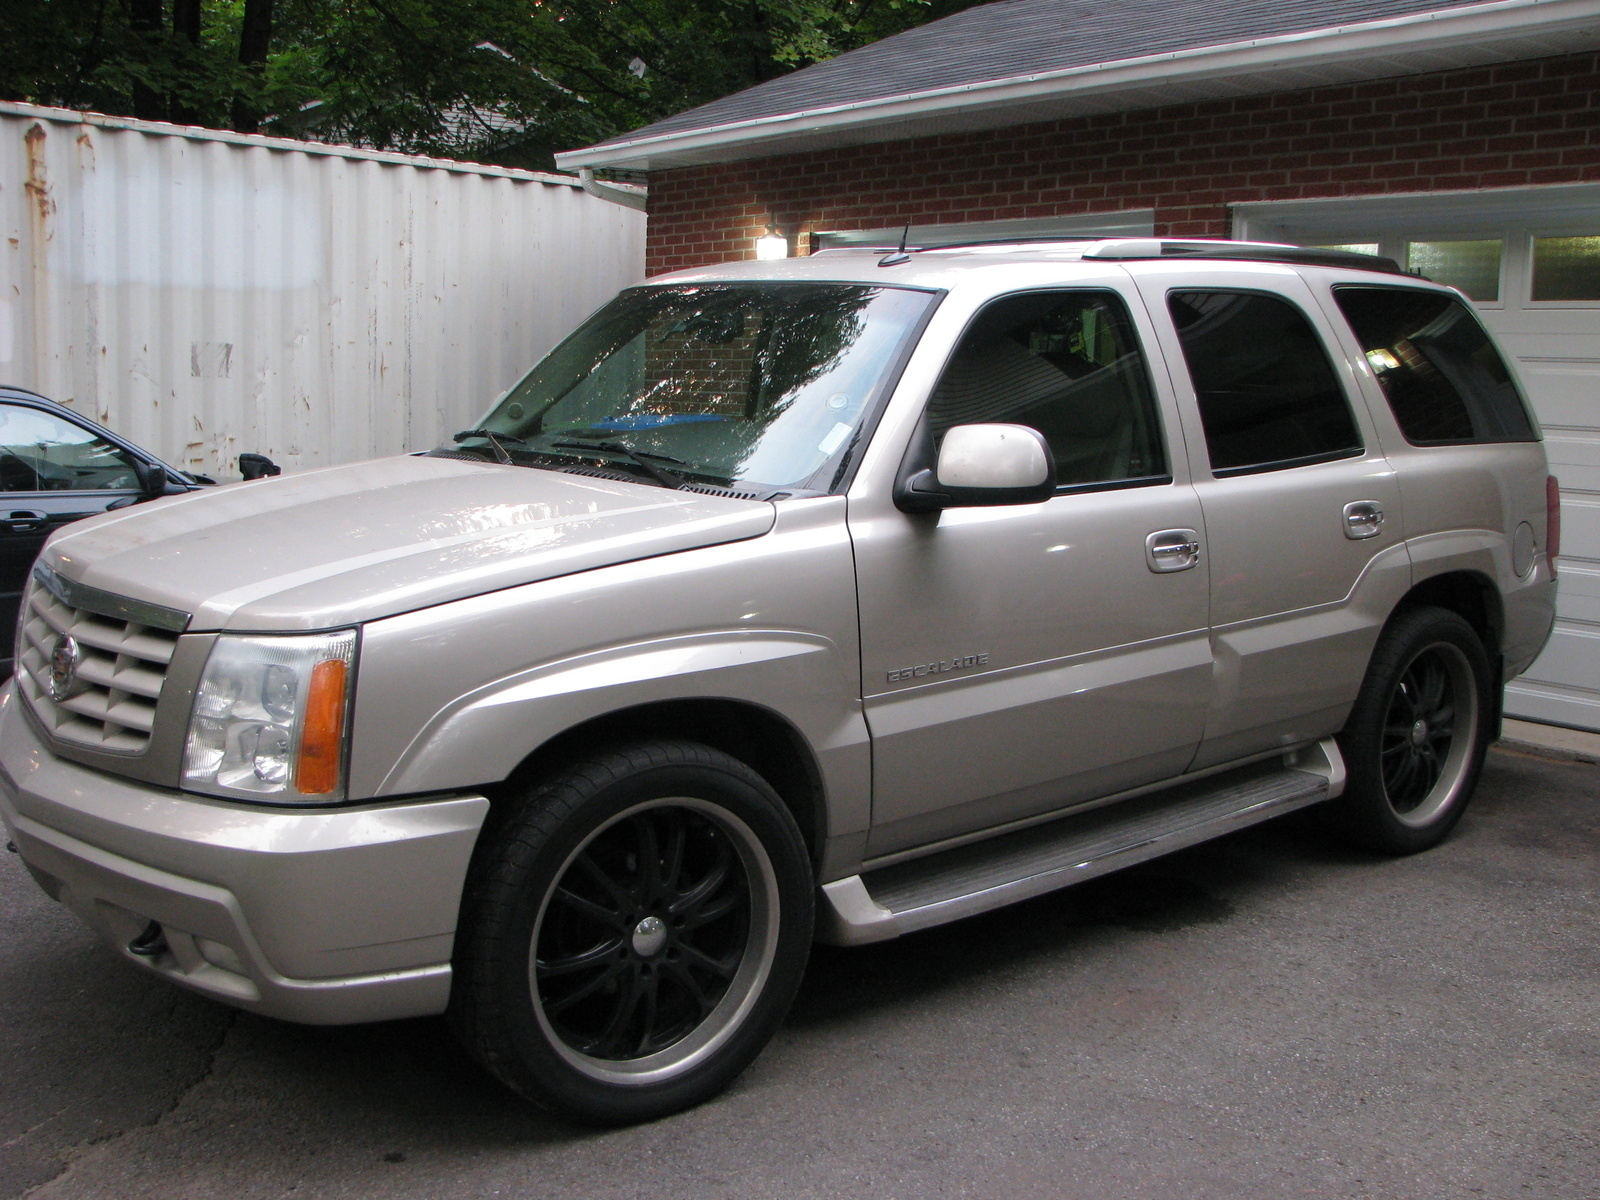 Picture of 2002 cadillac escalade awd exterior gallery_worthy